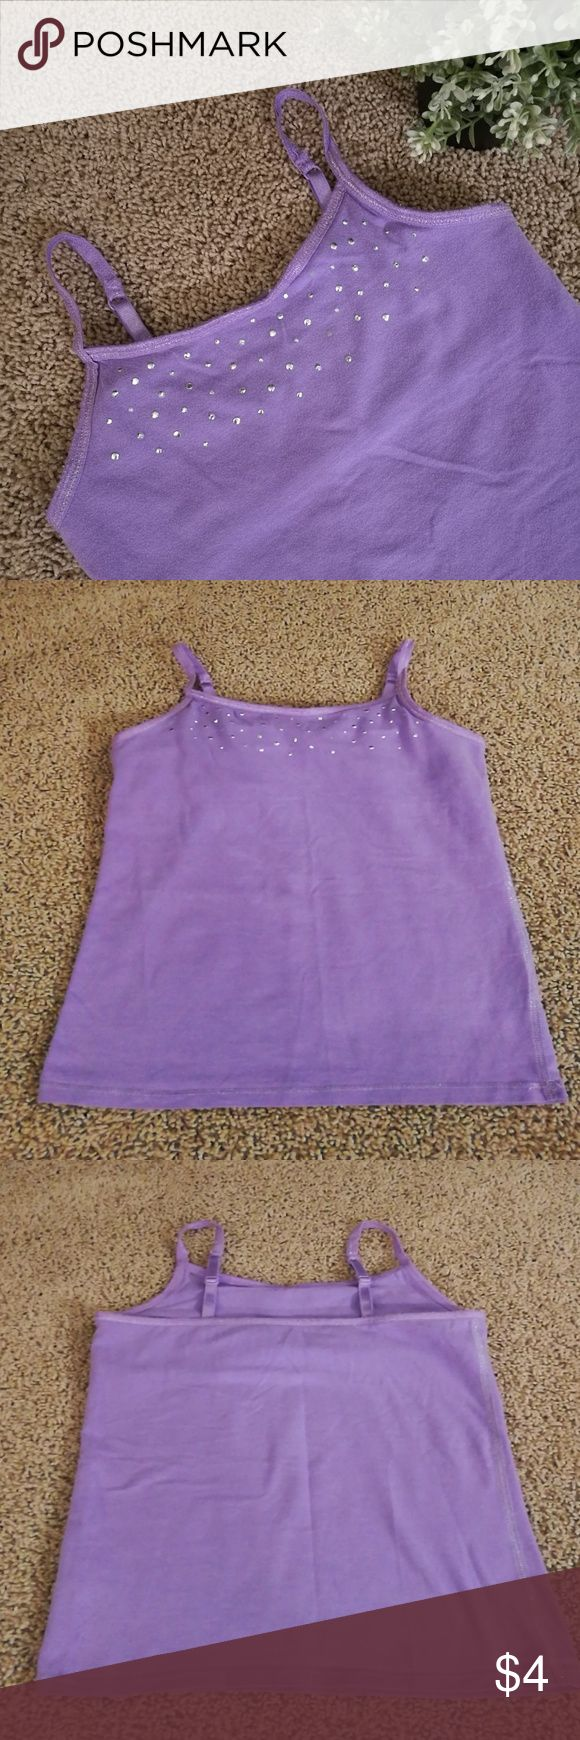 SO Kohl's Cami Embellished girls purple Cami. Pre-loved, gently worn, still has life! Built-in shelf bra, adjustable straps. Smoke and pet-free home. SO Shirts & Tops Camisoles